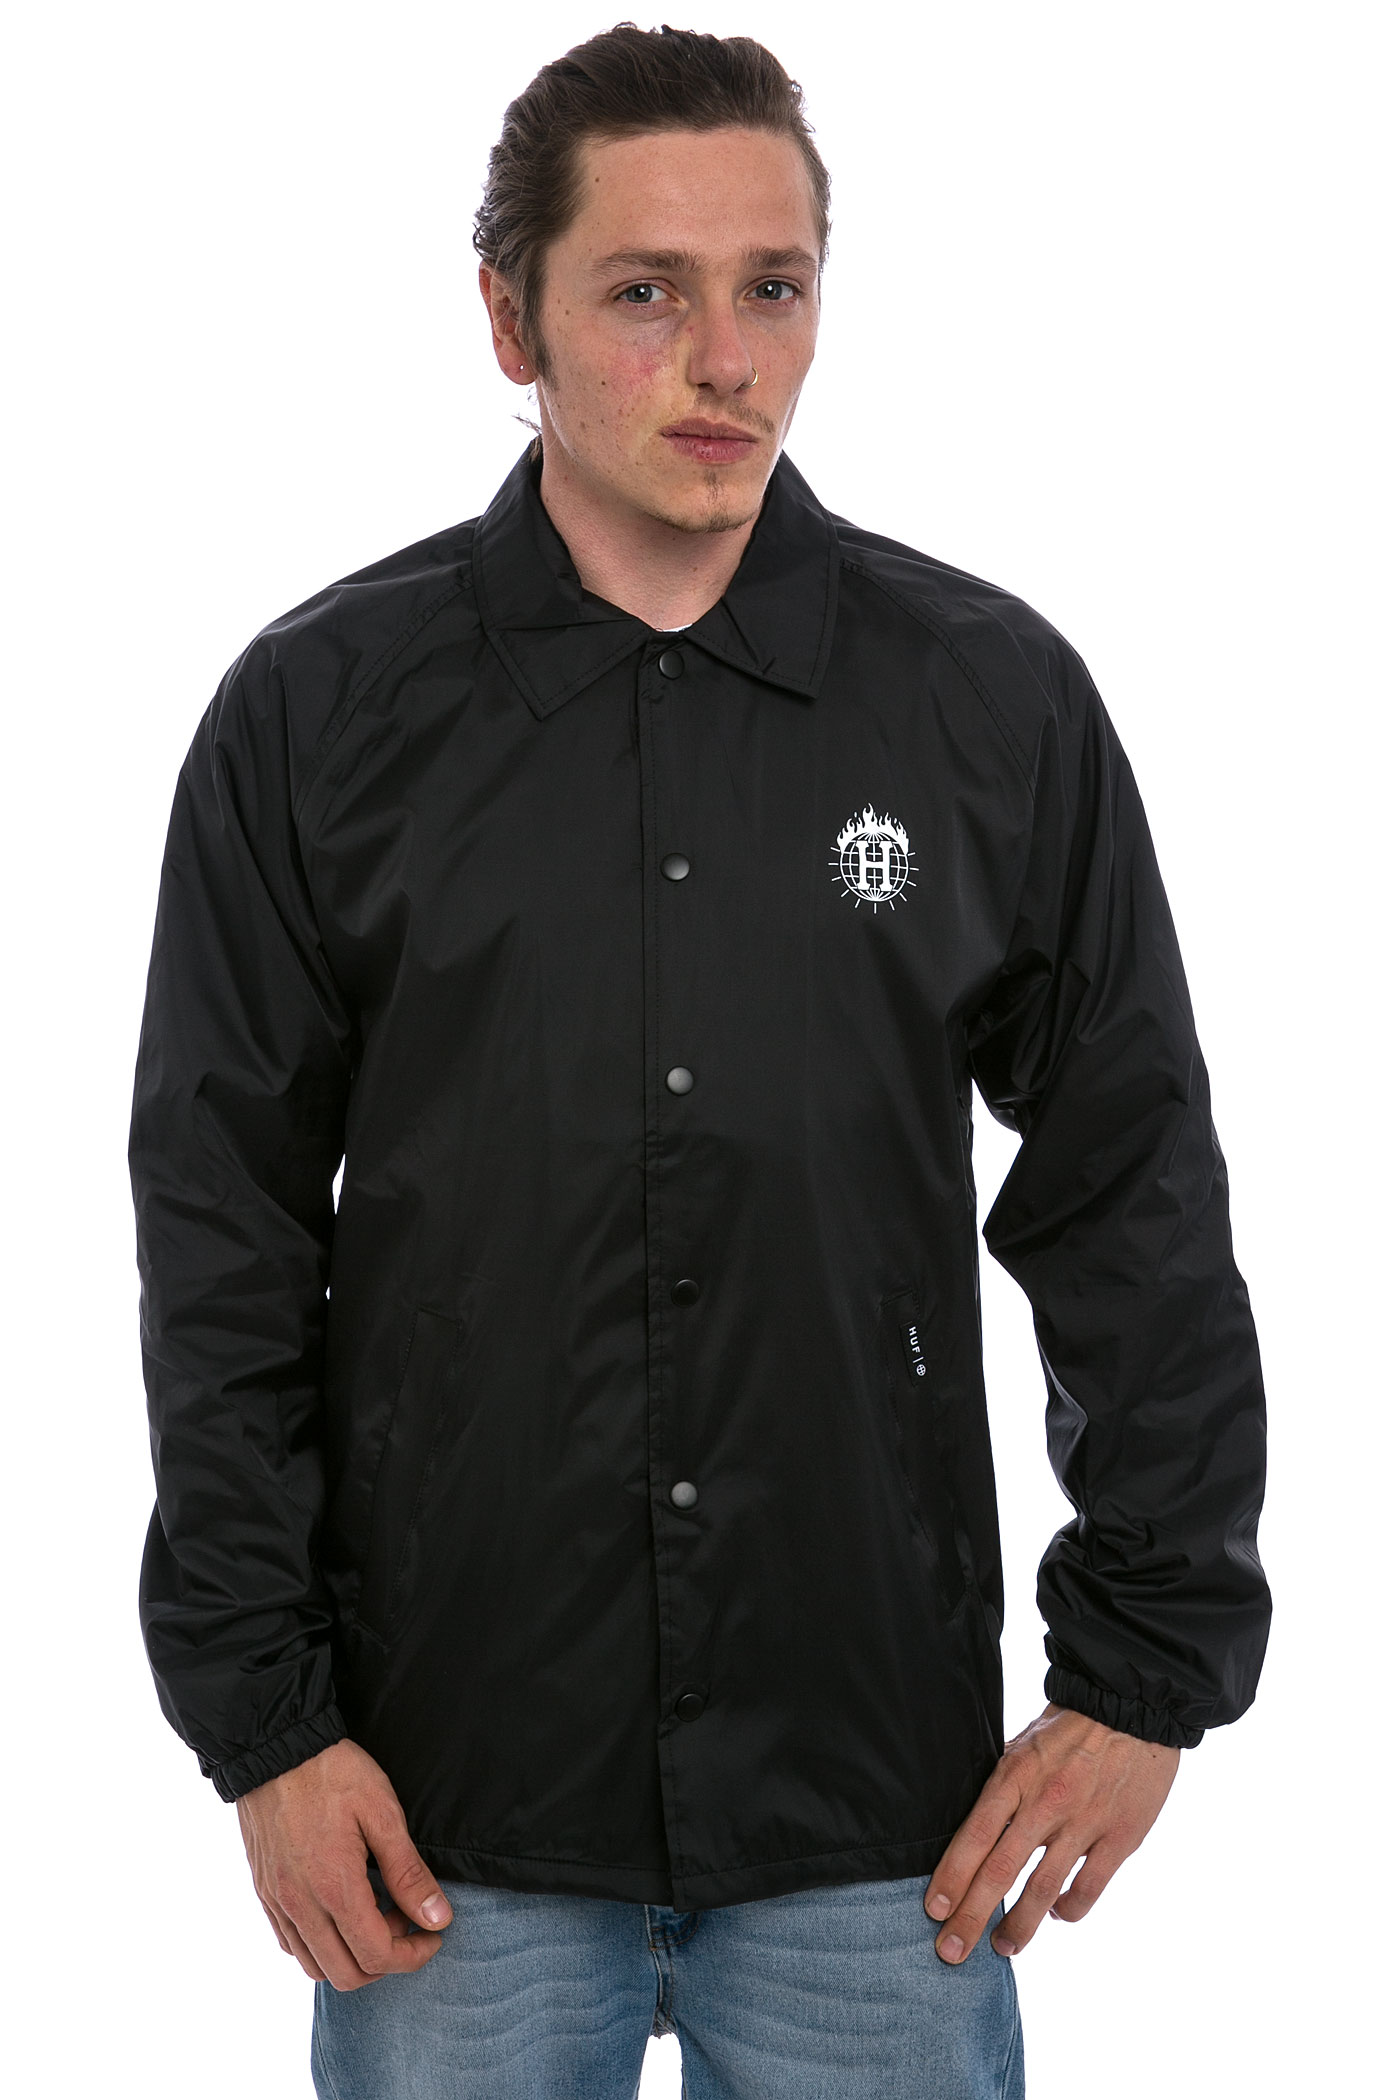 Huf x thrasher tds coach 39 s jacket black buy at skatedeluxe for Coach jacket